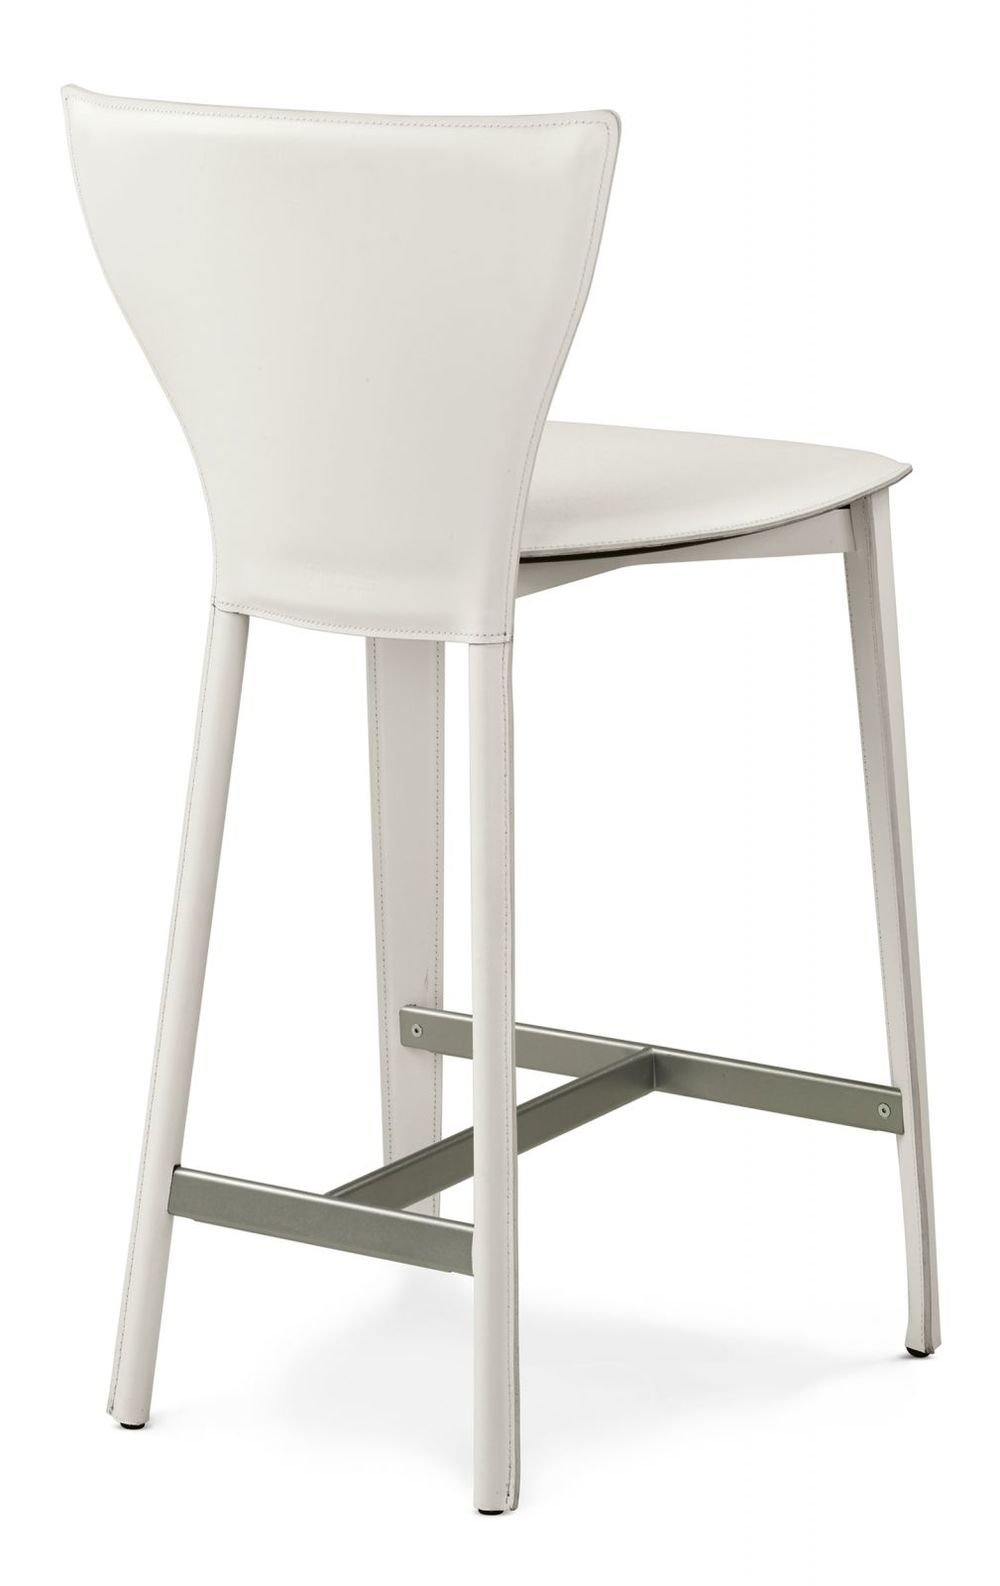 modern-bar-stools-Italian-furniture-large (23).jpg